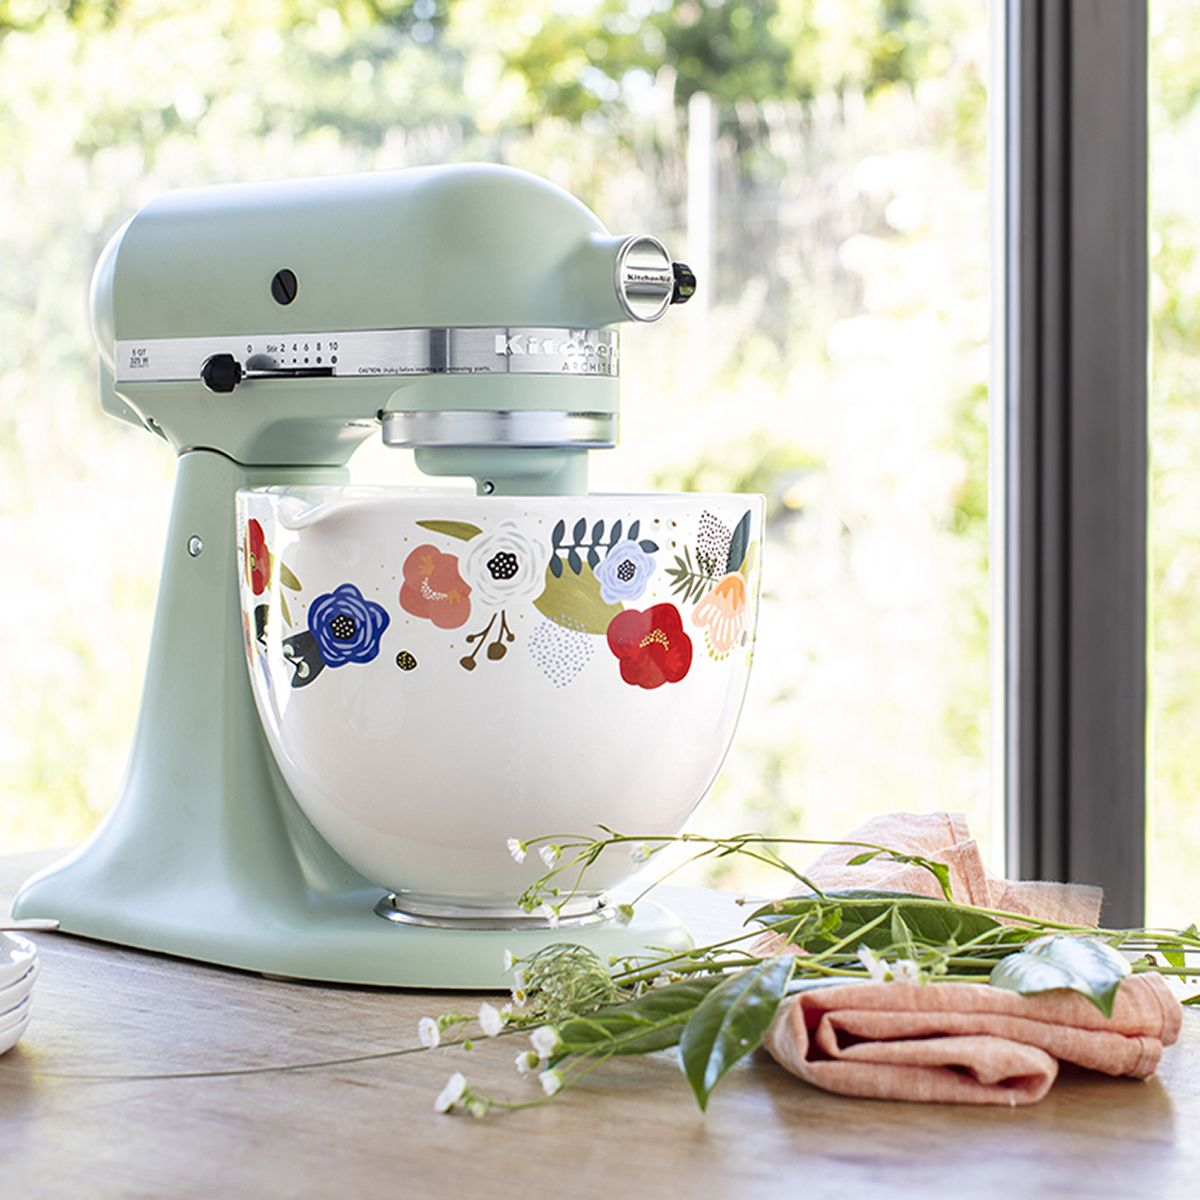 Kitchenaid is releasing patterned stand mixer bowls and we